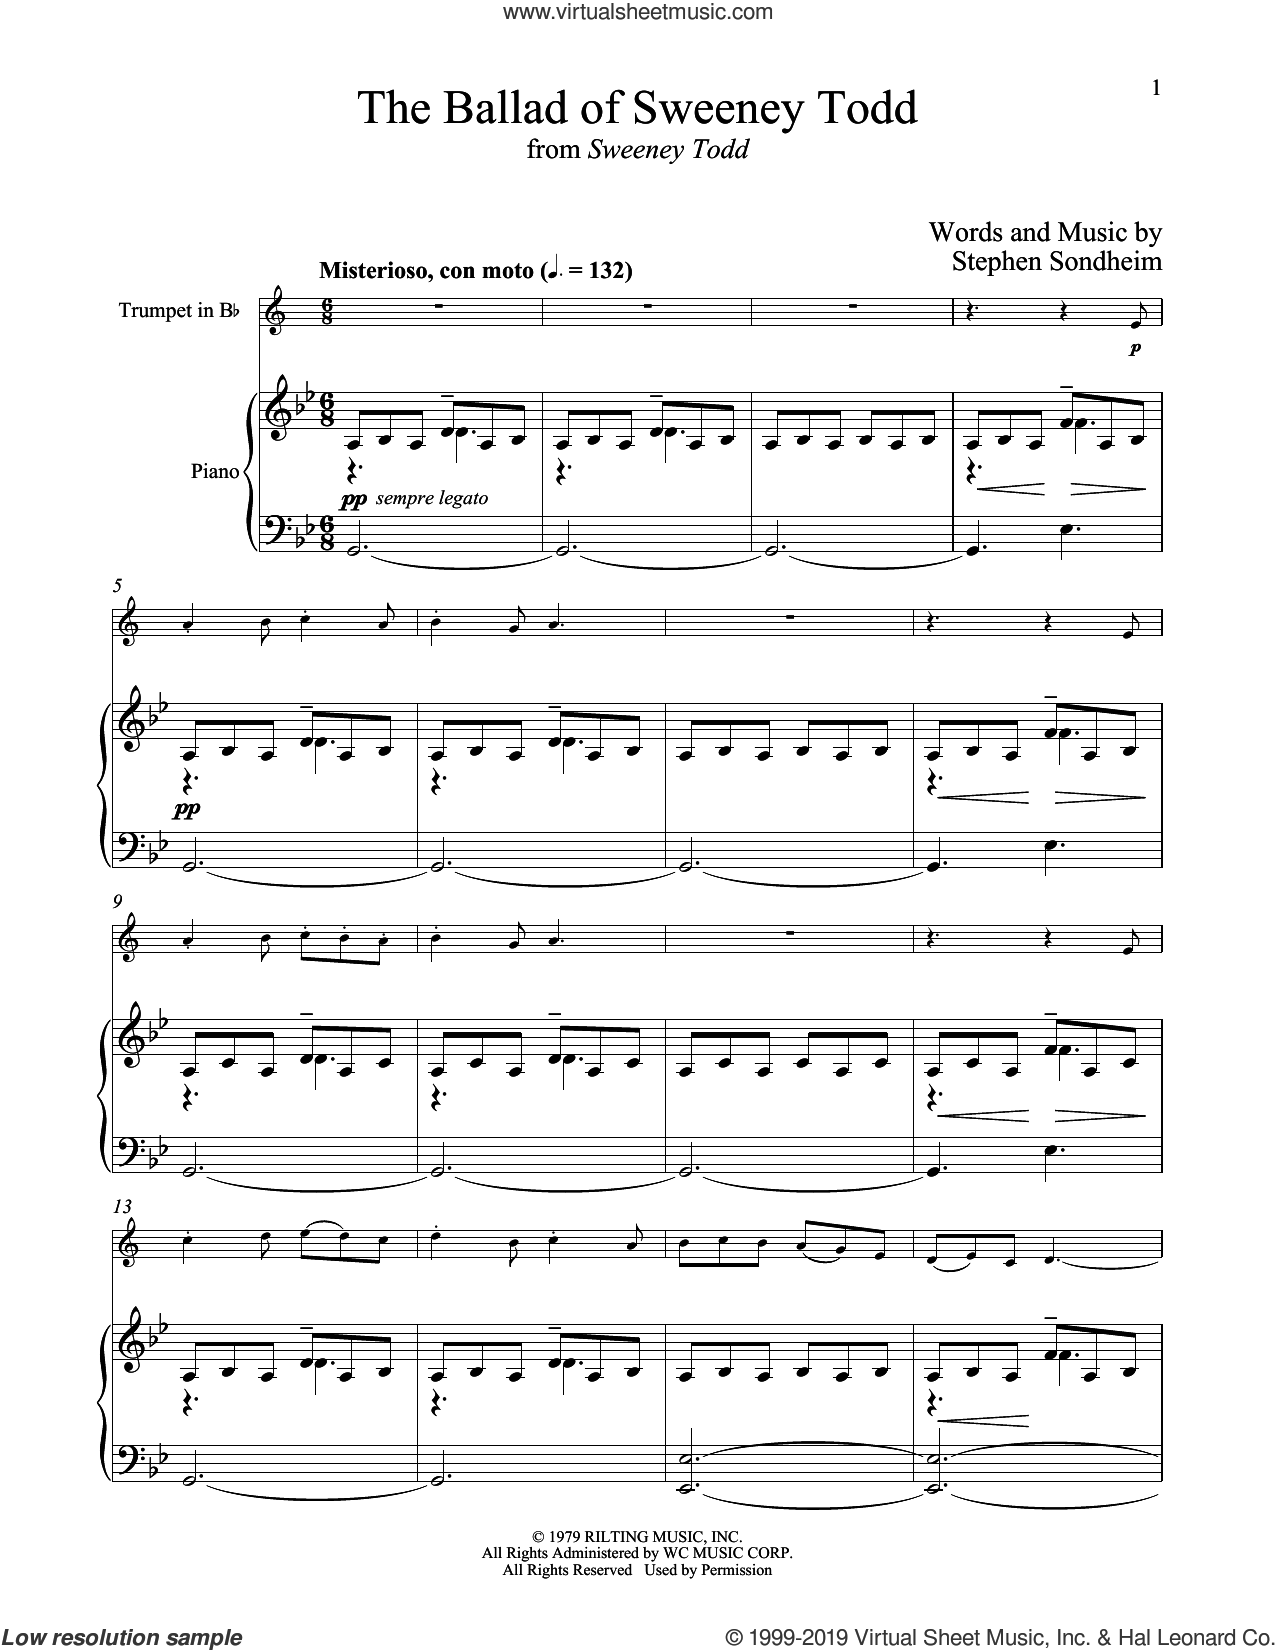 The Ballad Of Sweeney Todd (from Sweeney Todd) sheet music for trumpet and piano by Stephen Sondheim, intermediate skill level